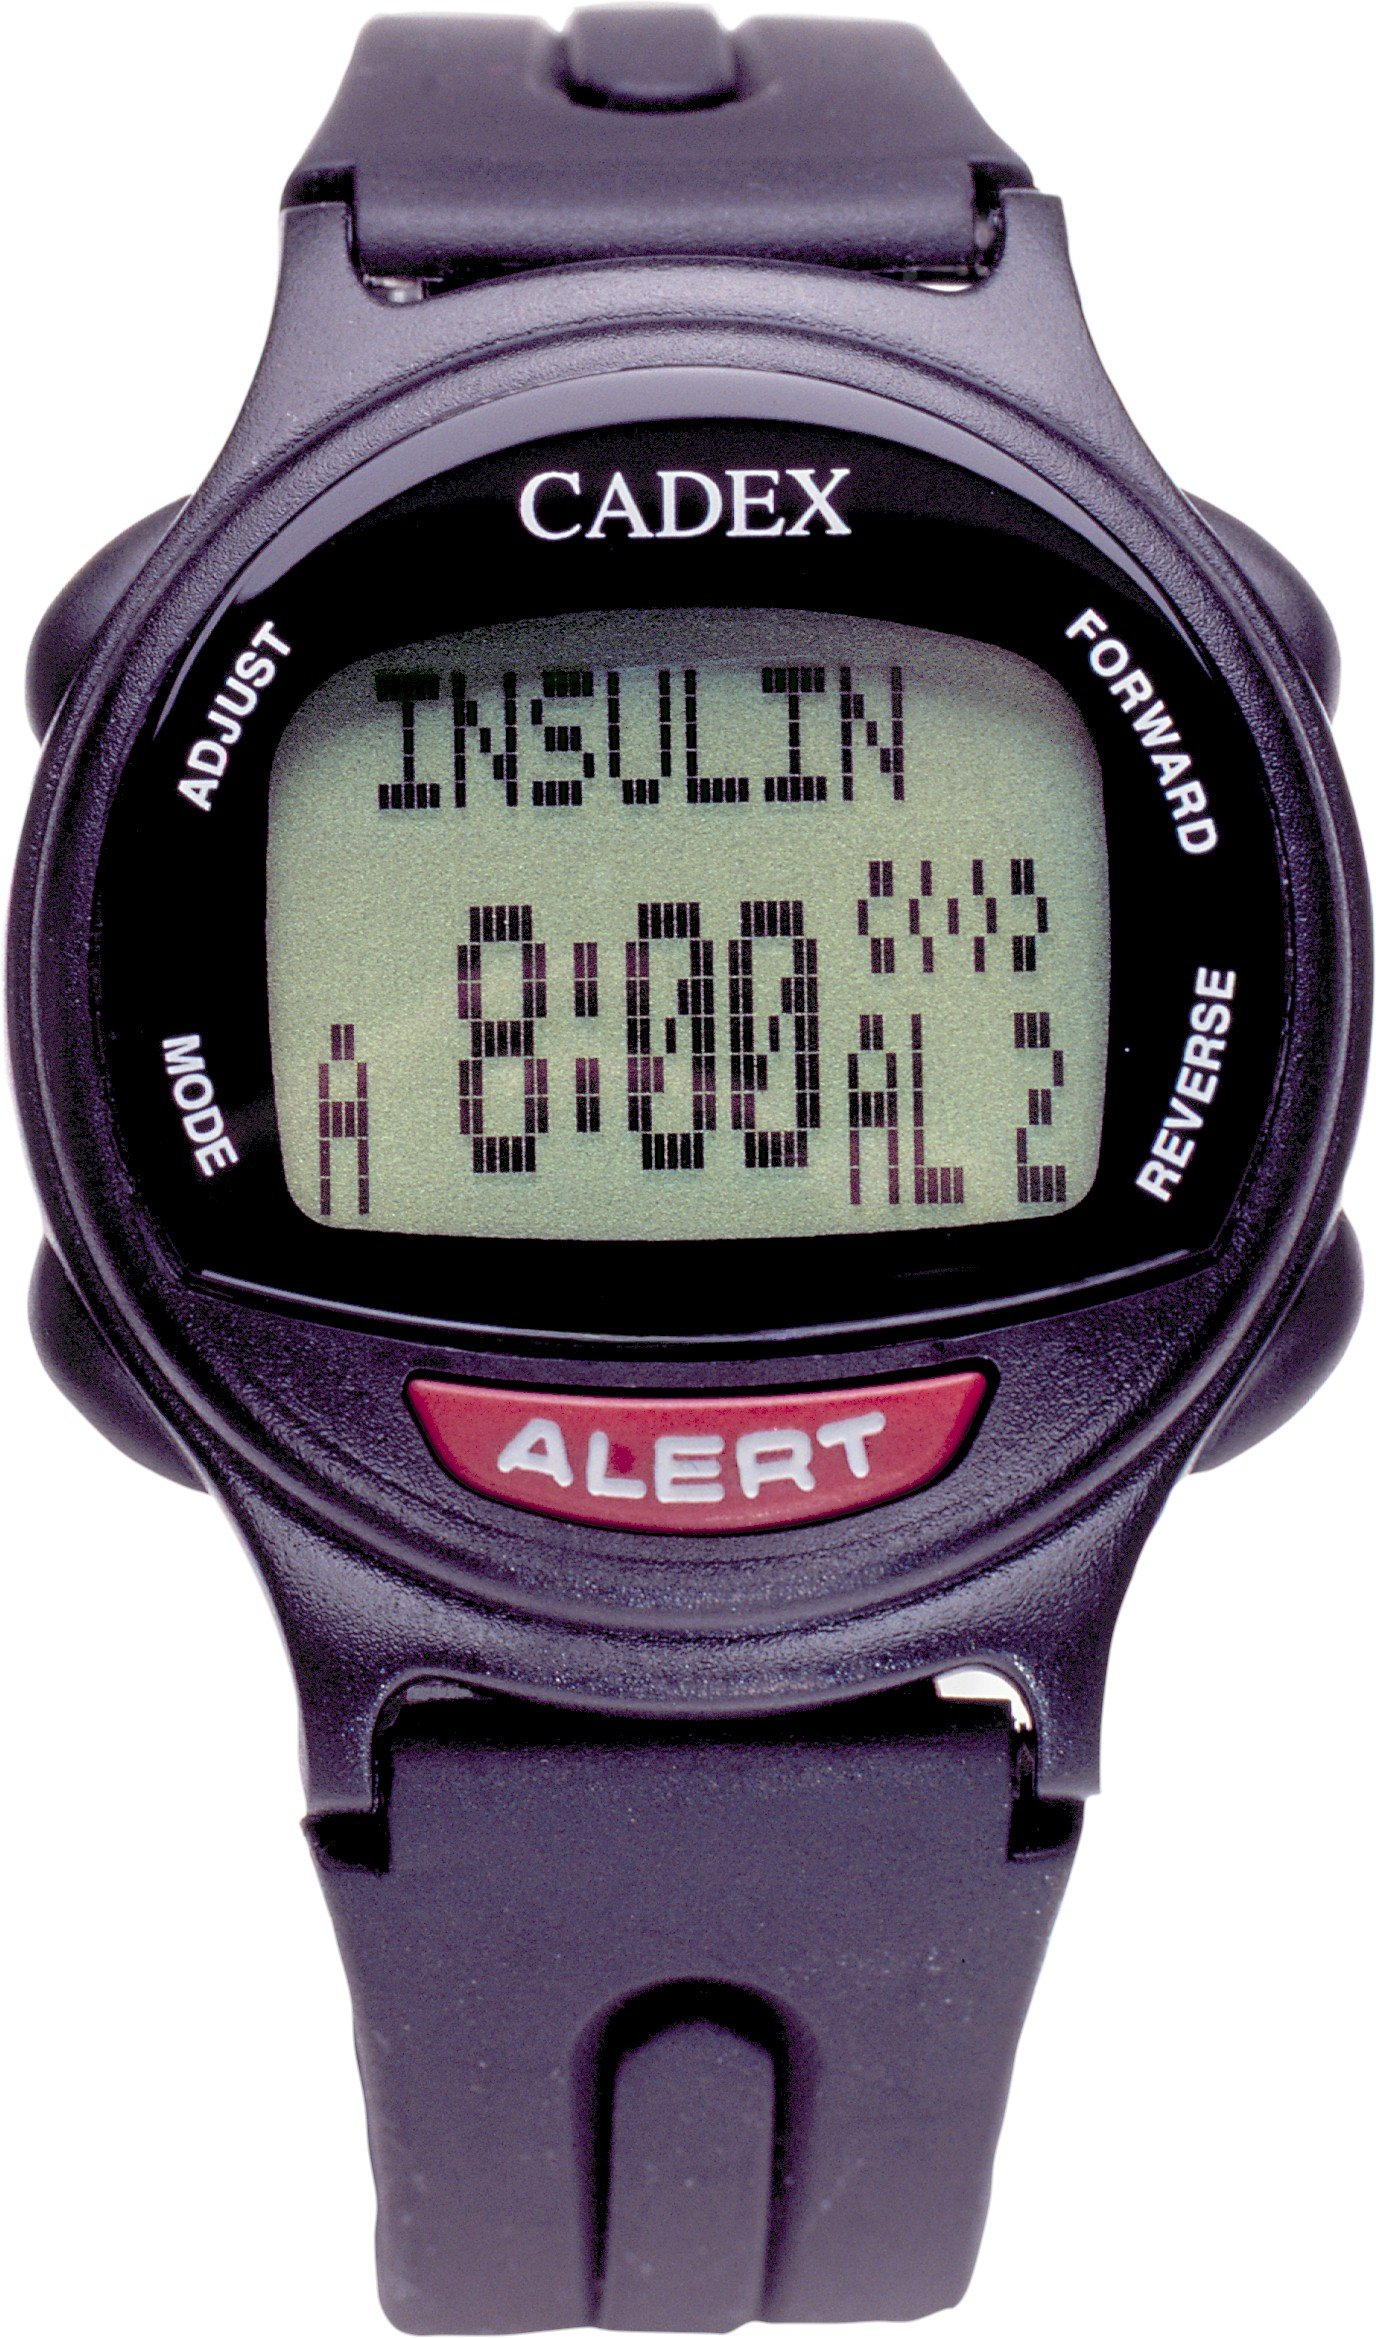 The e-pill Cadex 12 Alarm Medication Reminder Watch - Black by e-pill Medication Reminders